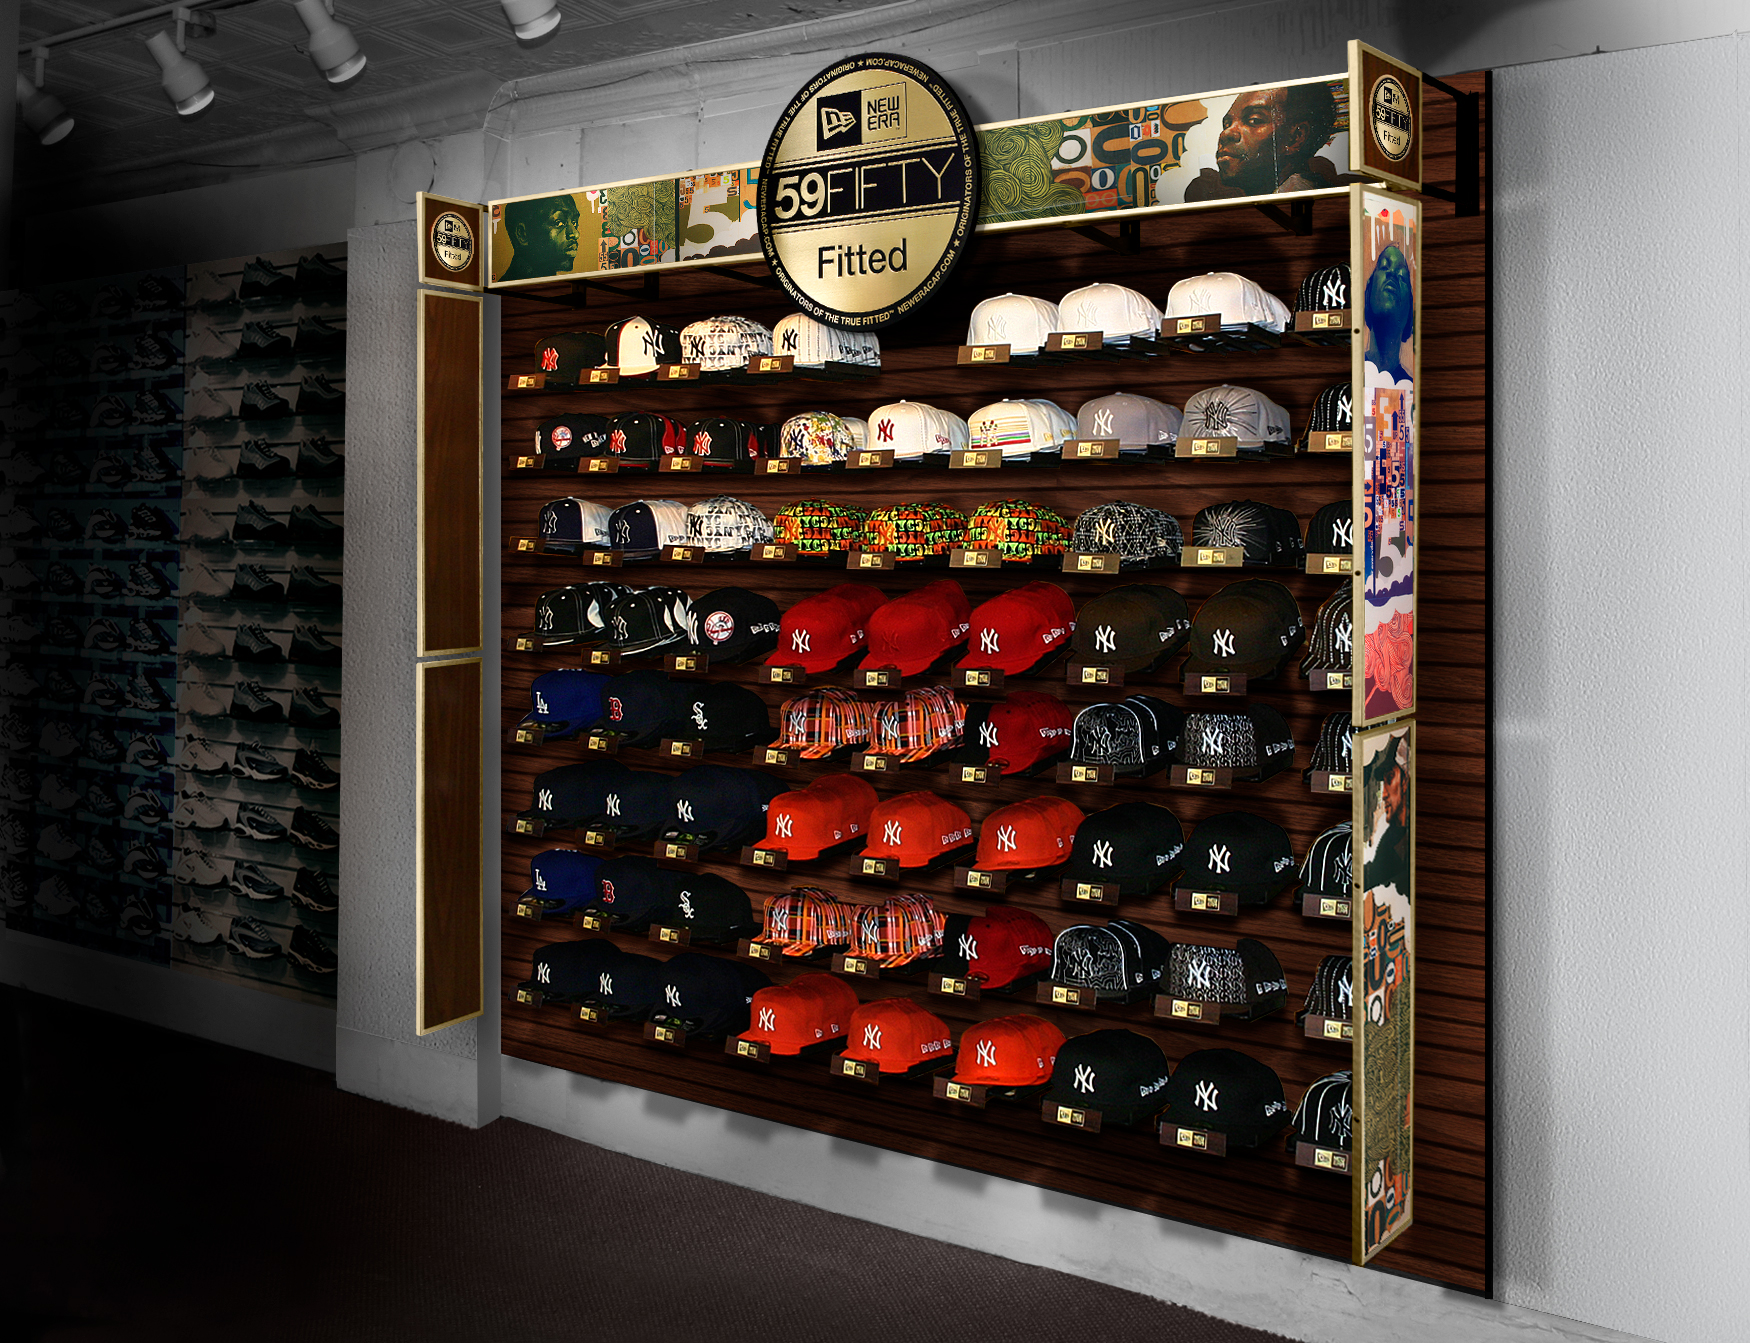 Digital render of retail product shelf in store contains new era fitted hats